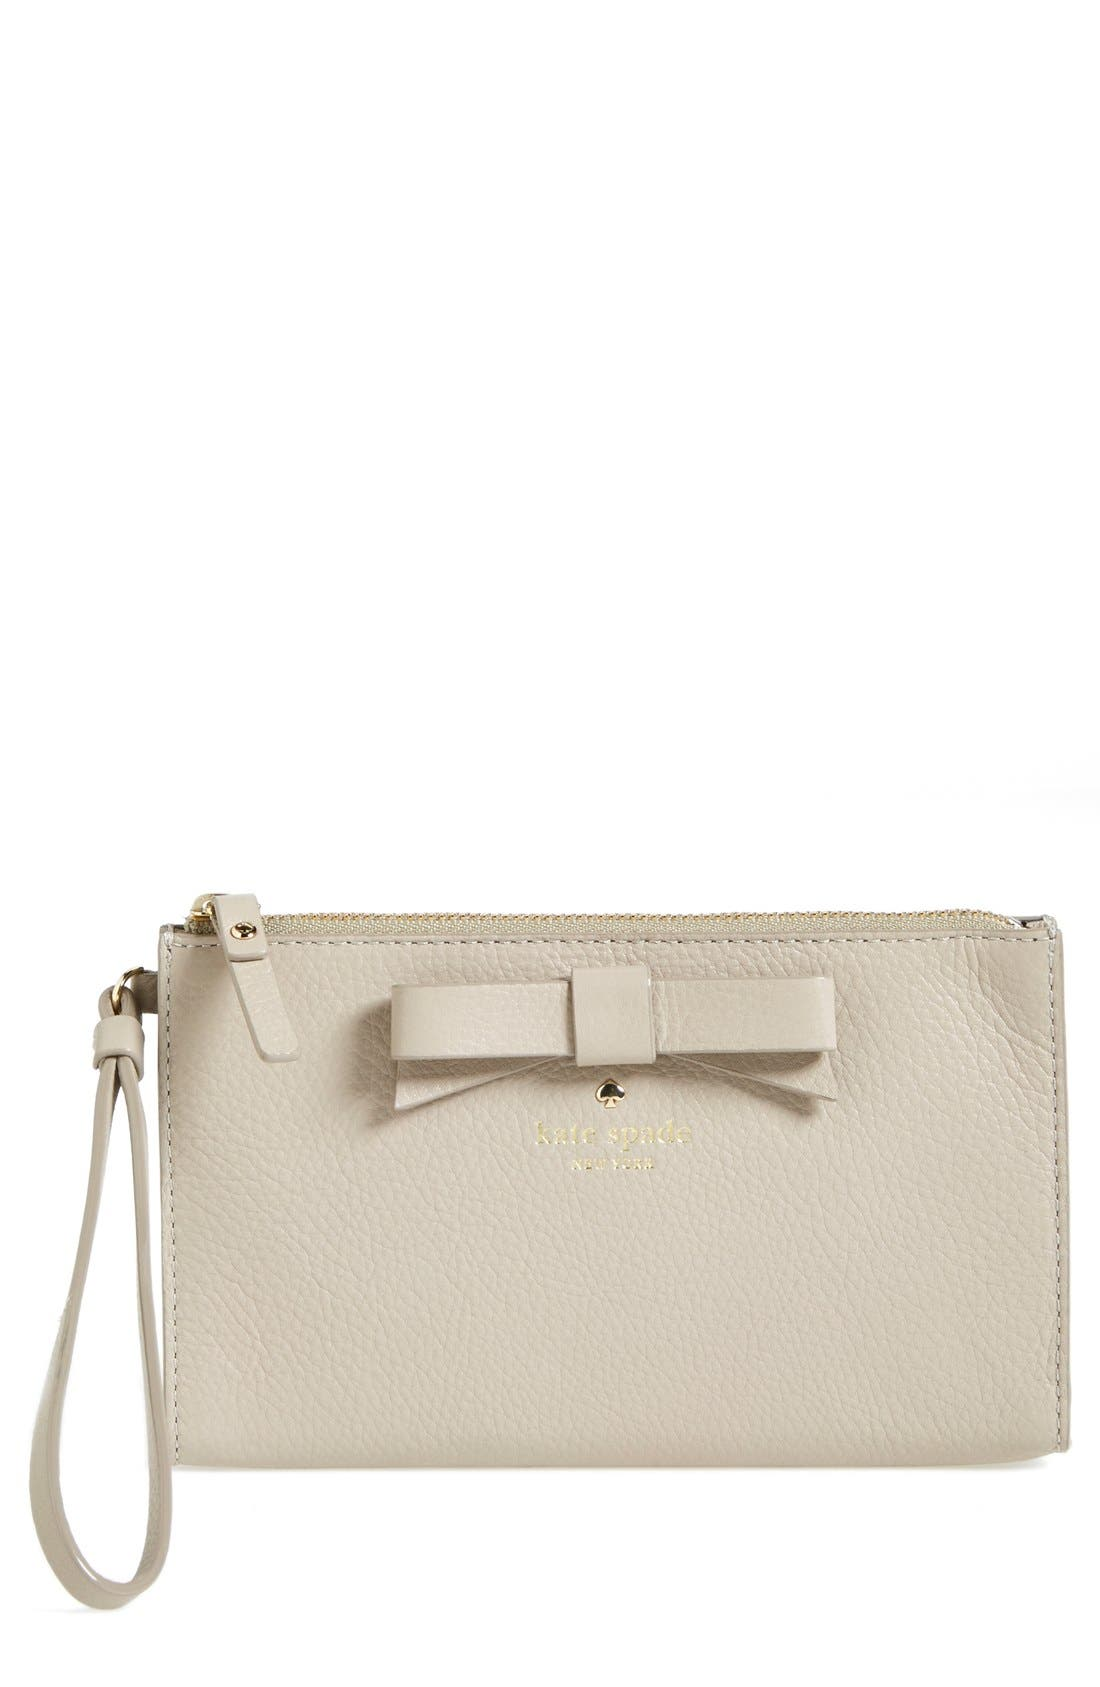 Alternate Image 1 Selected - kate spade new york 'north court - bow leyna' pebbled leather wristlet clutch (Nordstrom Exclusive)